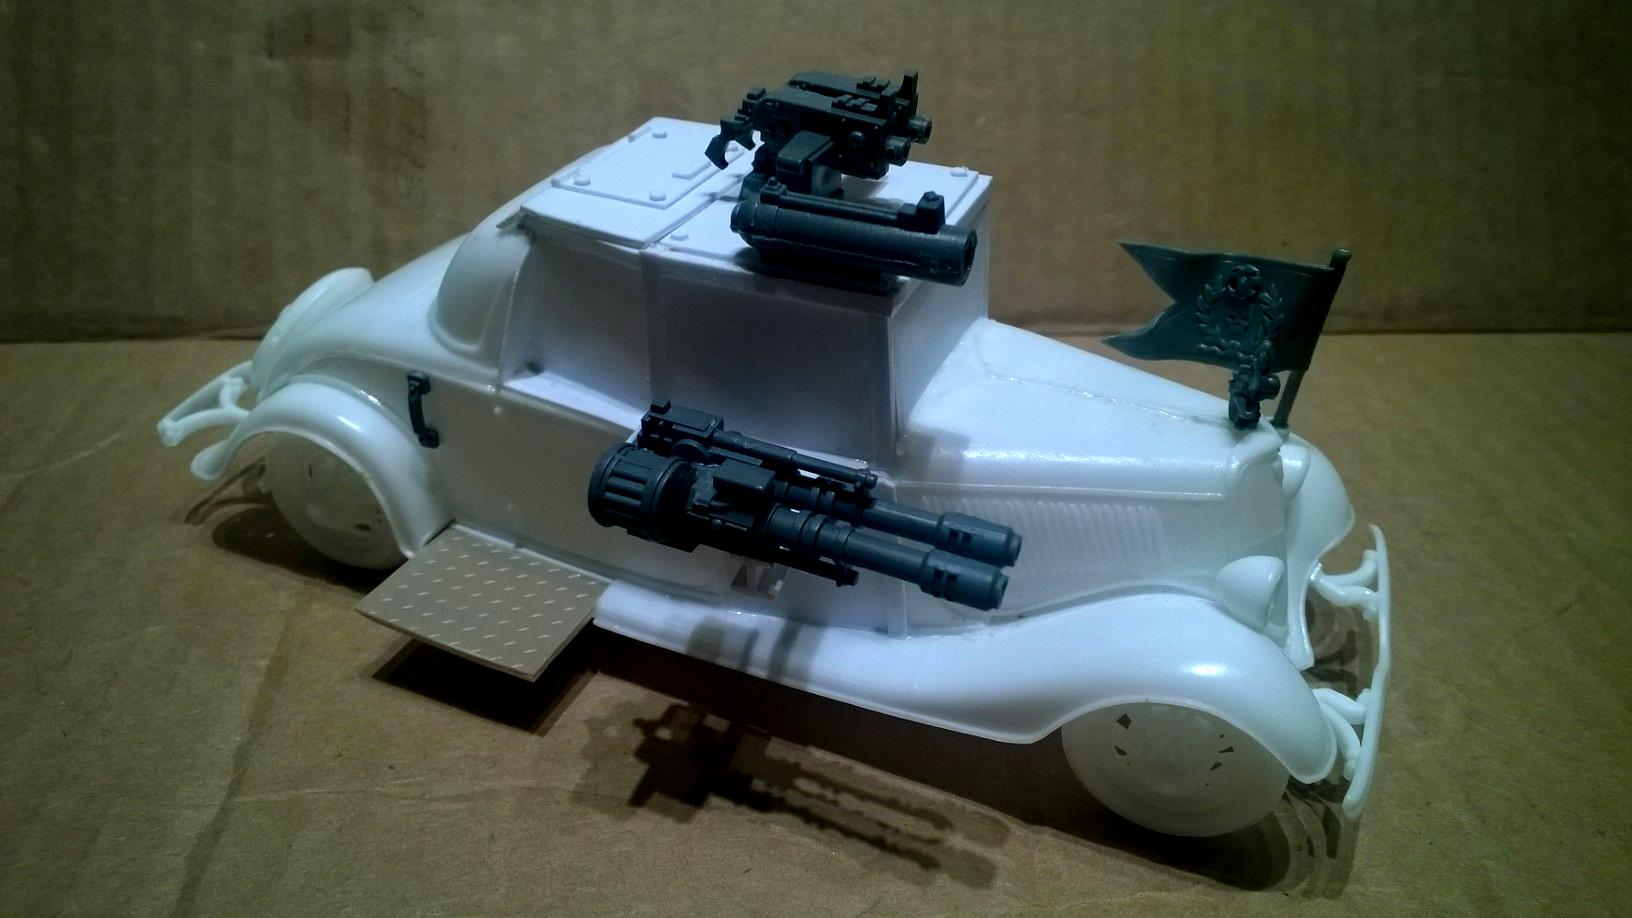 Armored Car, Bashed, Cult, Genestealer, Goliath, Kit, Limo, Limousine, Proxy, Truck